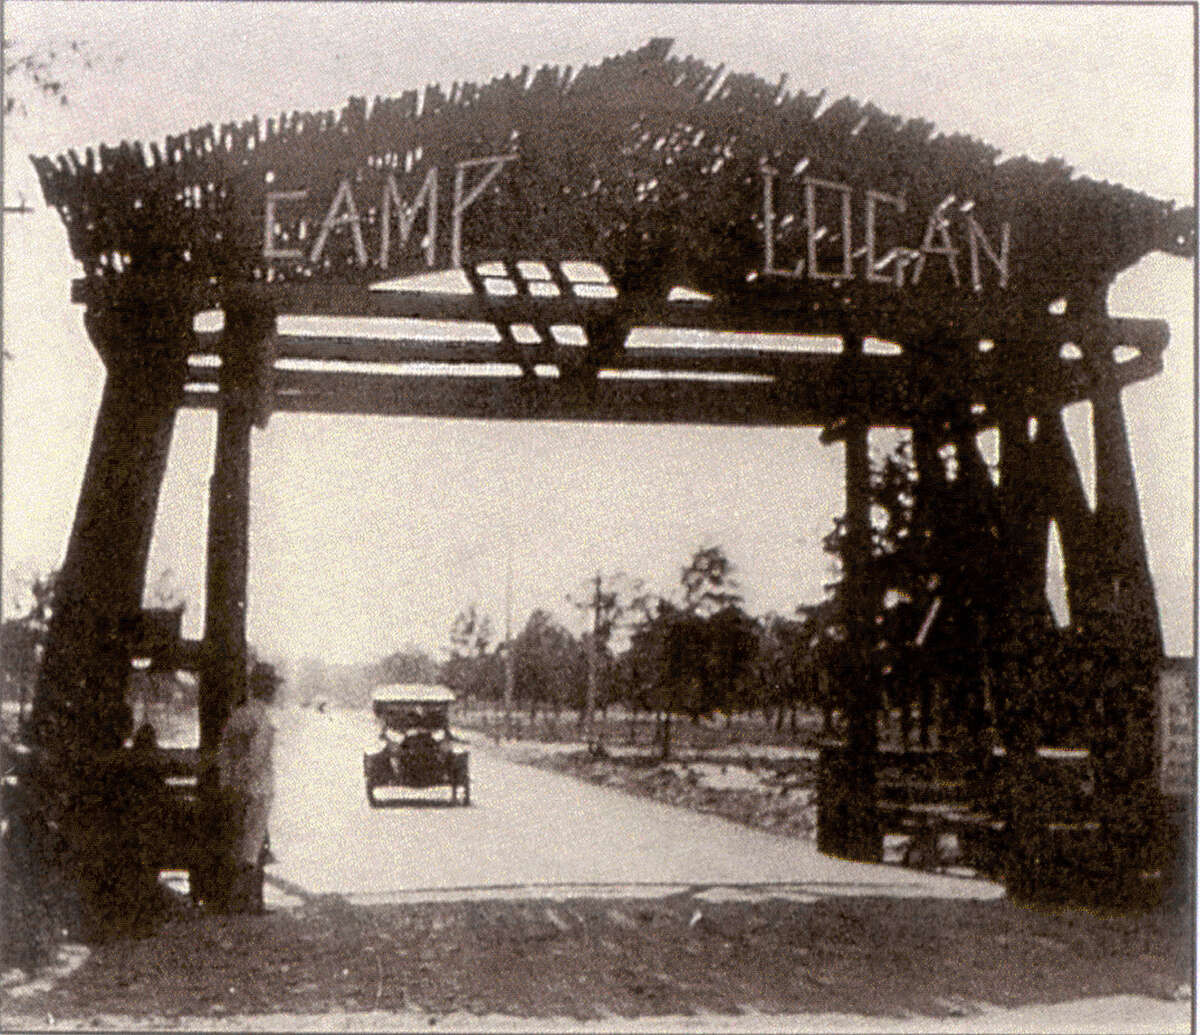 Camp Logan, a World War I training camp, could house about 45,000 men.